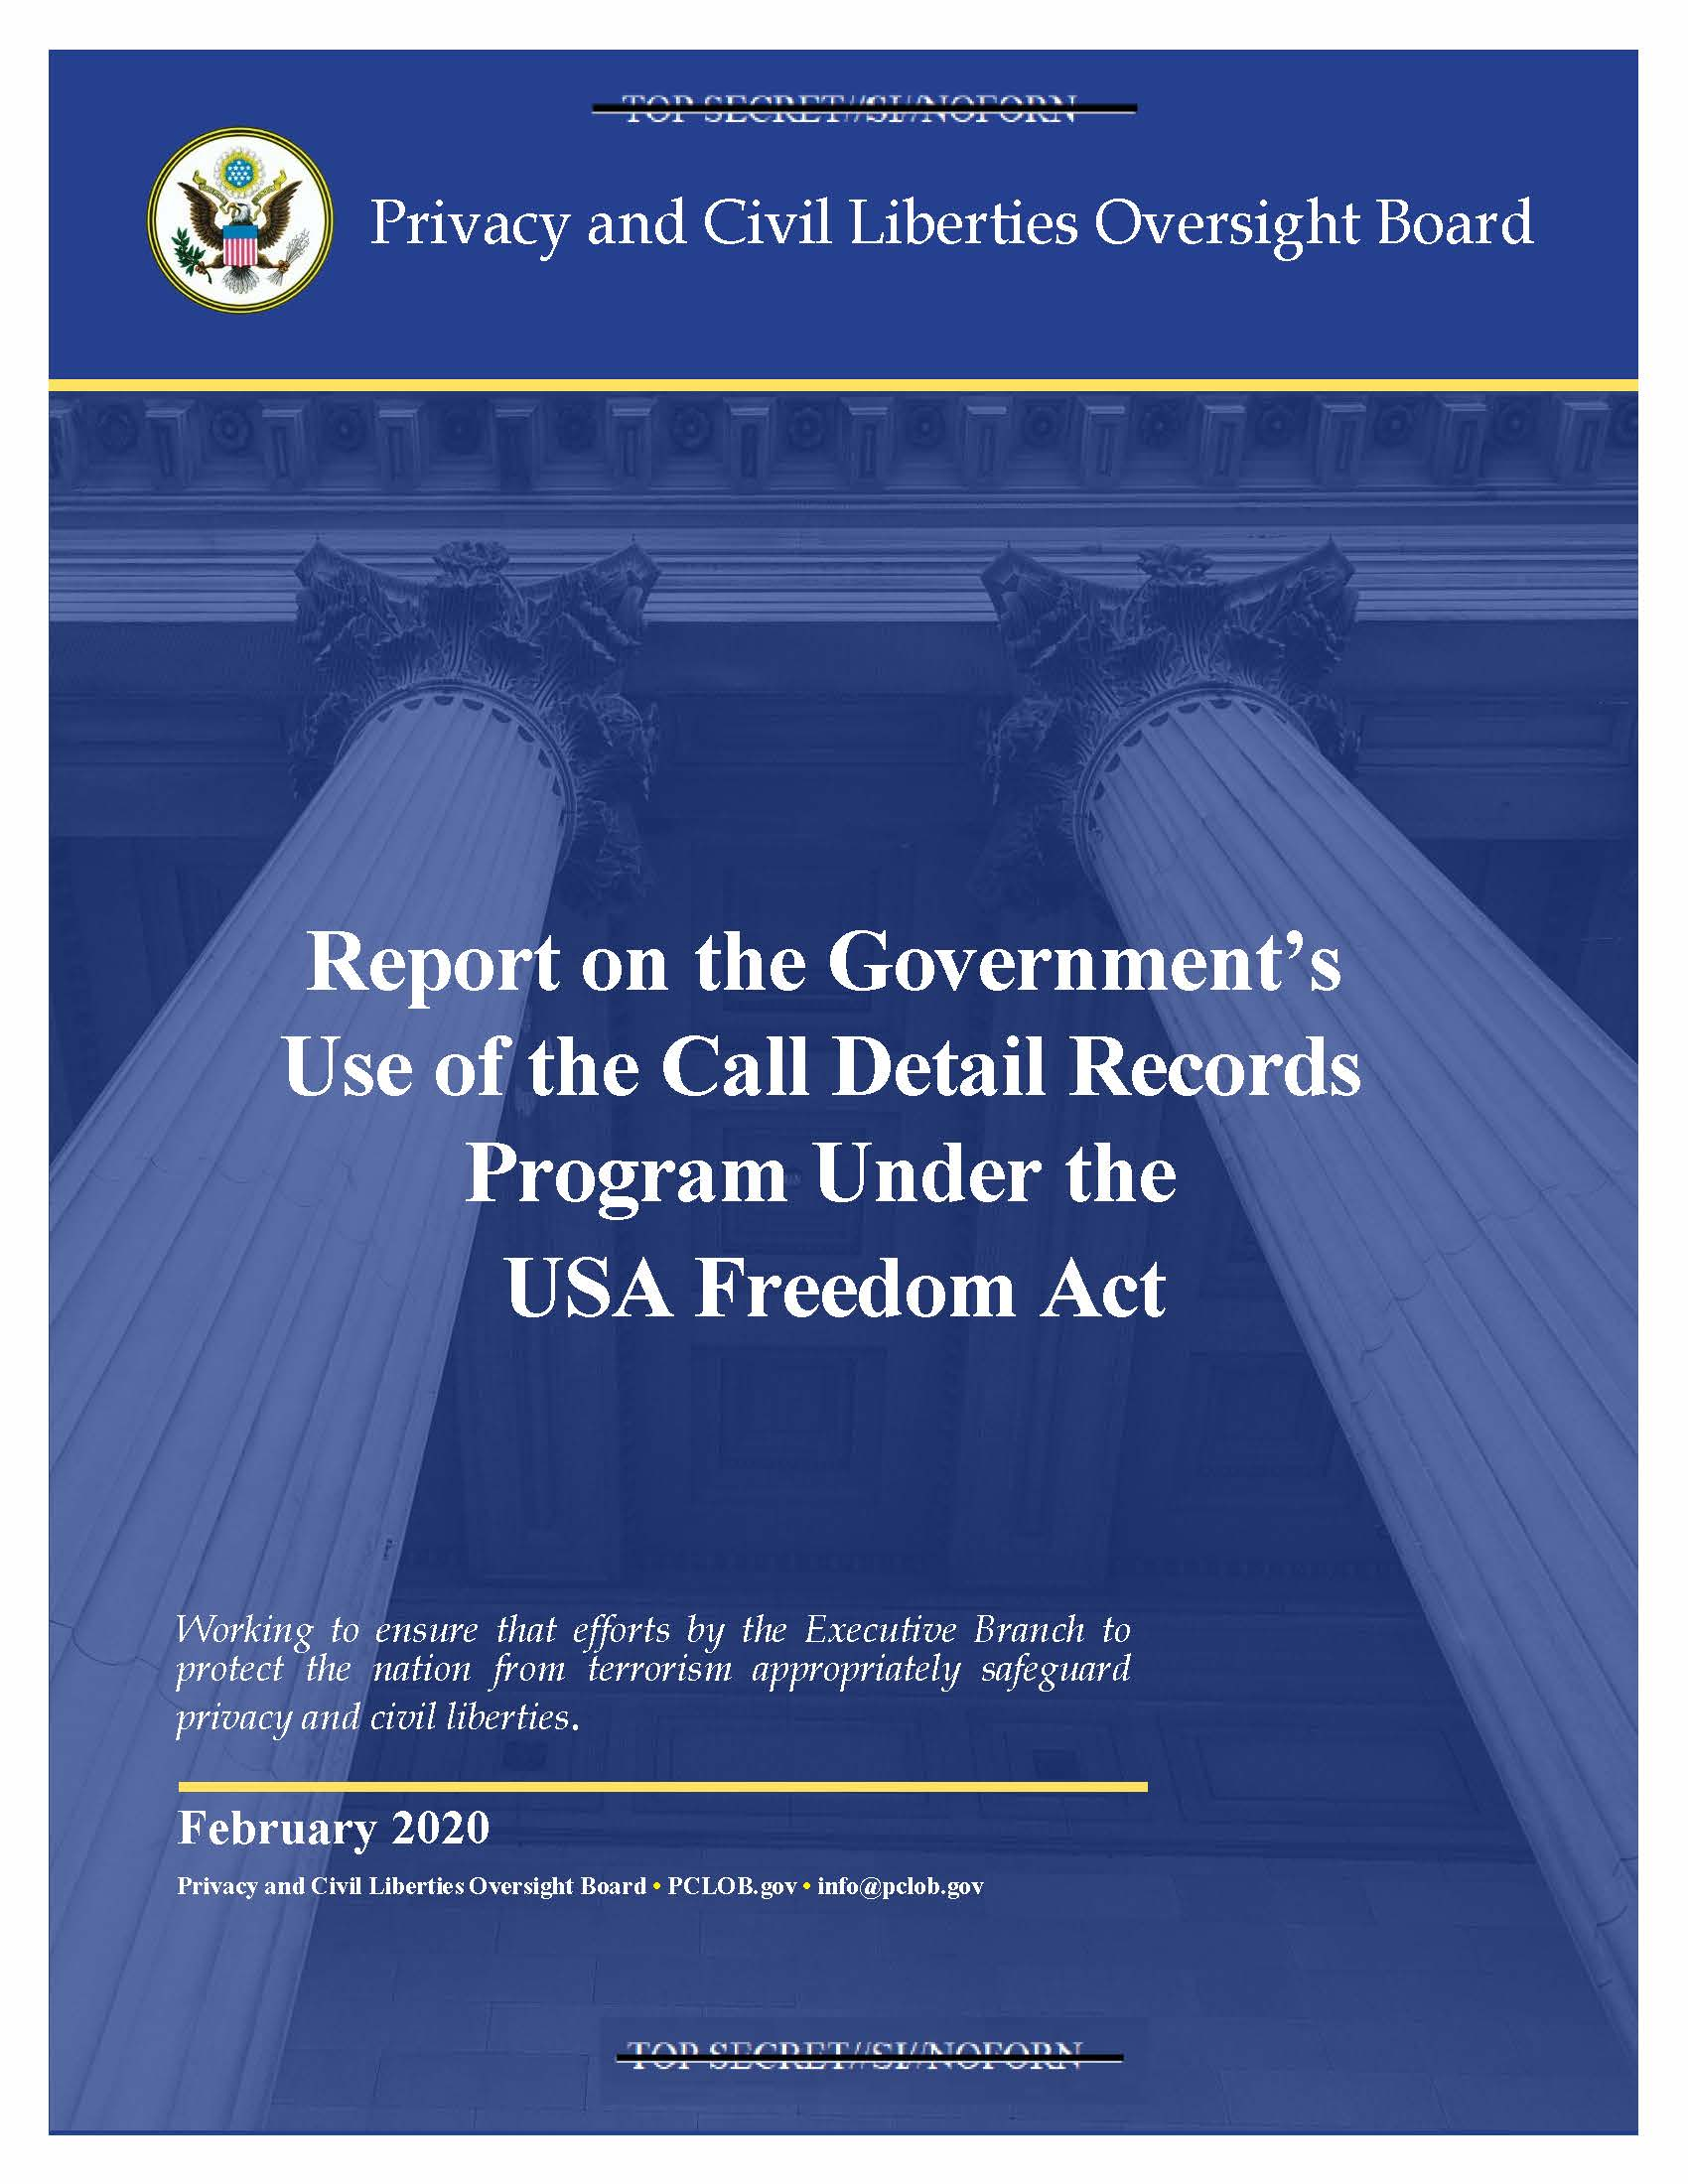 Cover of the Report on the USA Freedom Act Telephone Call Records Program.